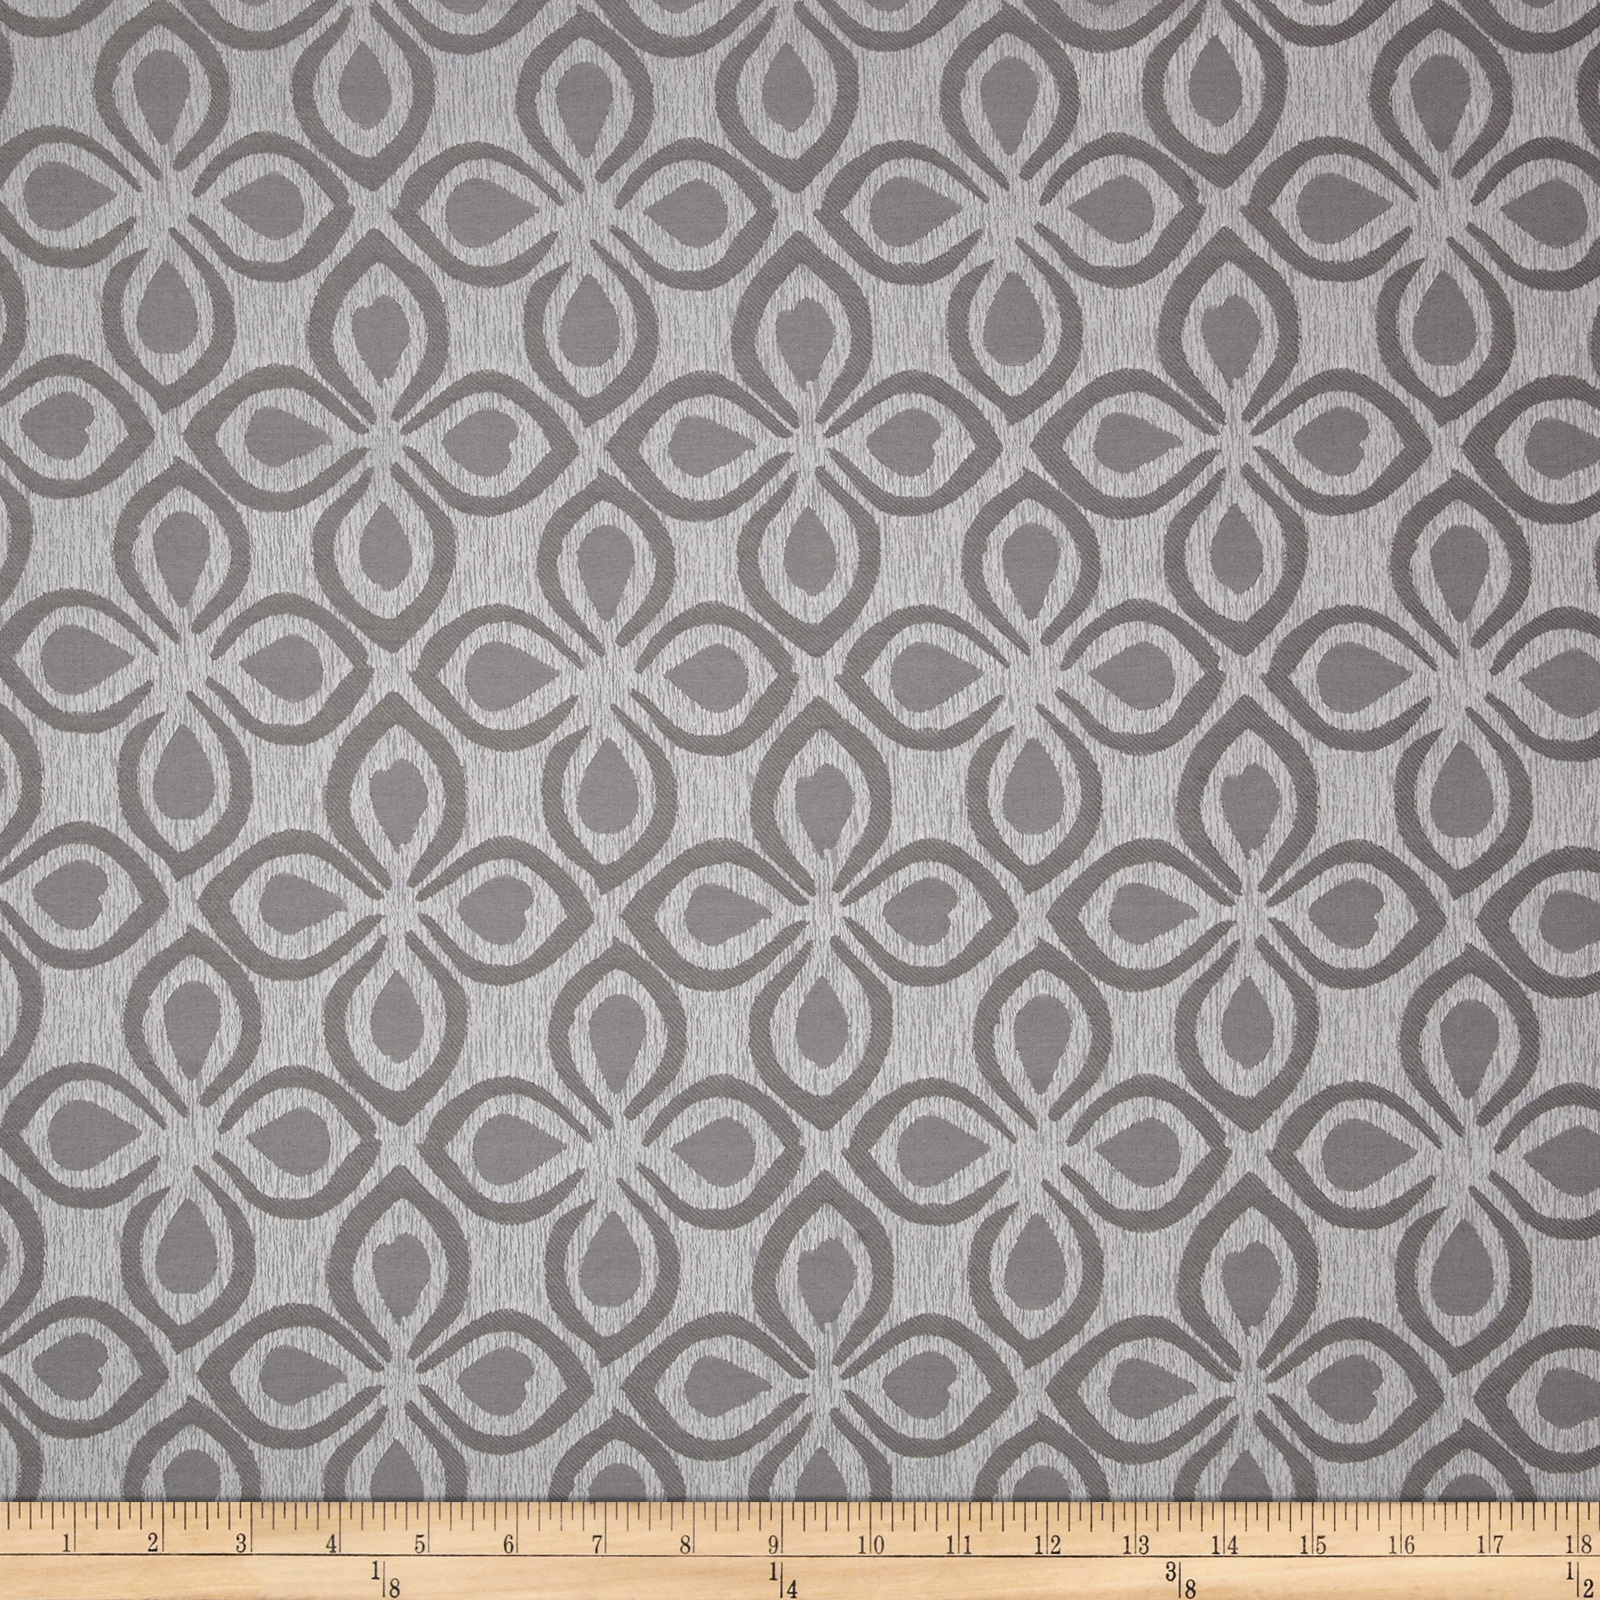 Eroica Aria Jacquard Silver Fabric by Eroica in USA